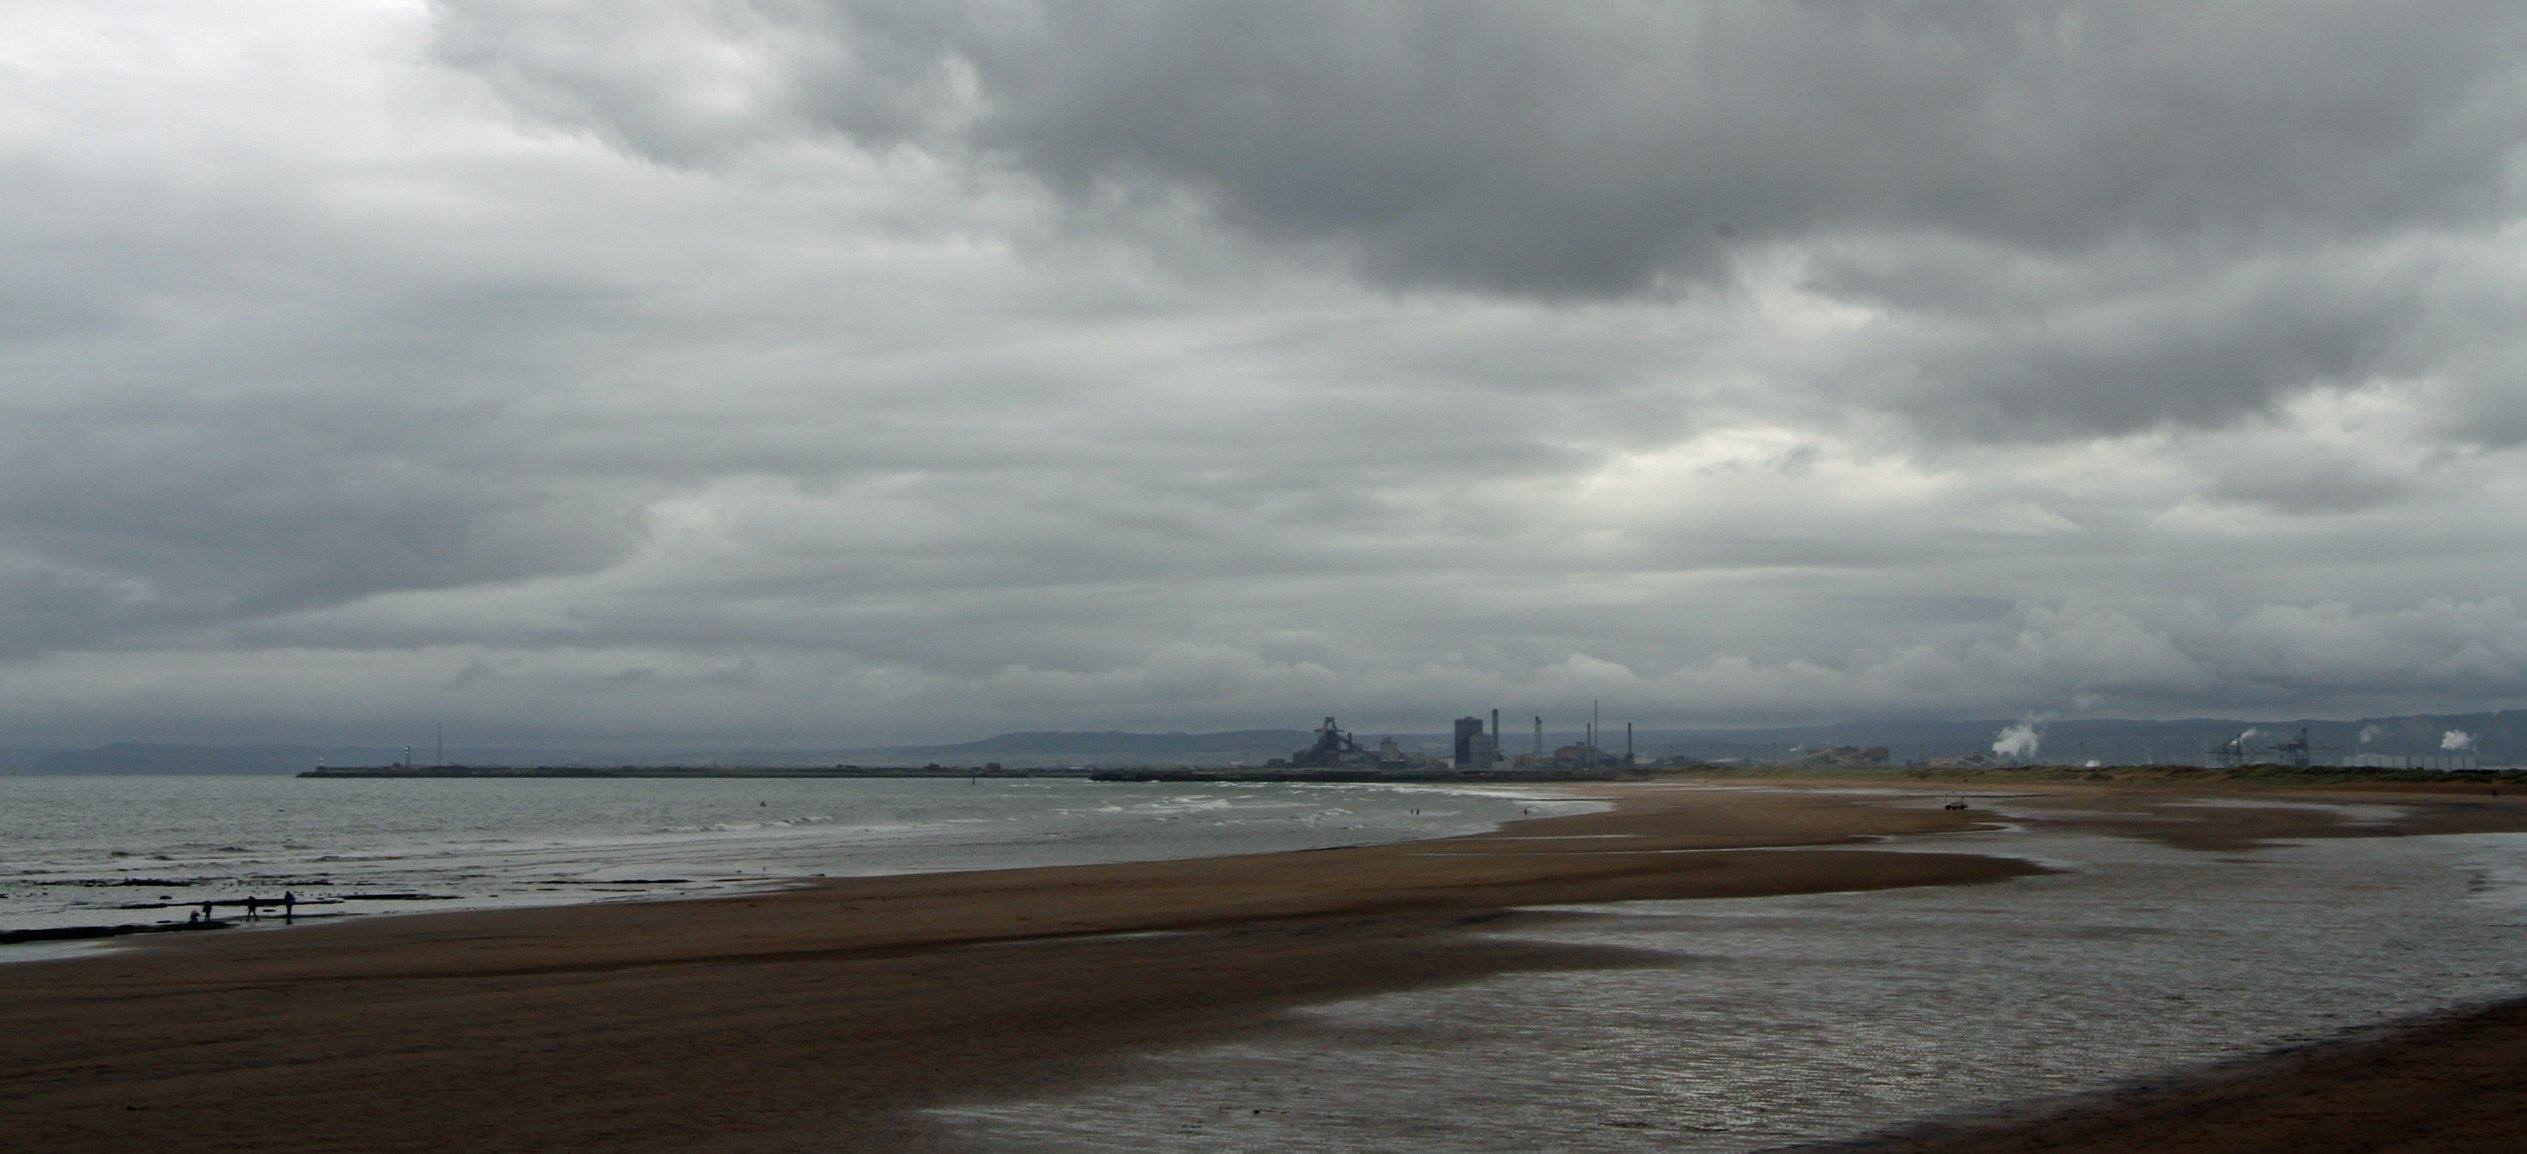 Moody Skies over Seaton Carew. Photo: Paul White